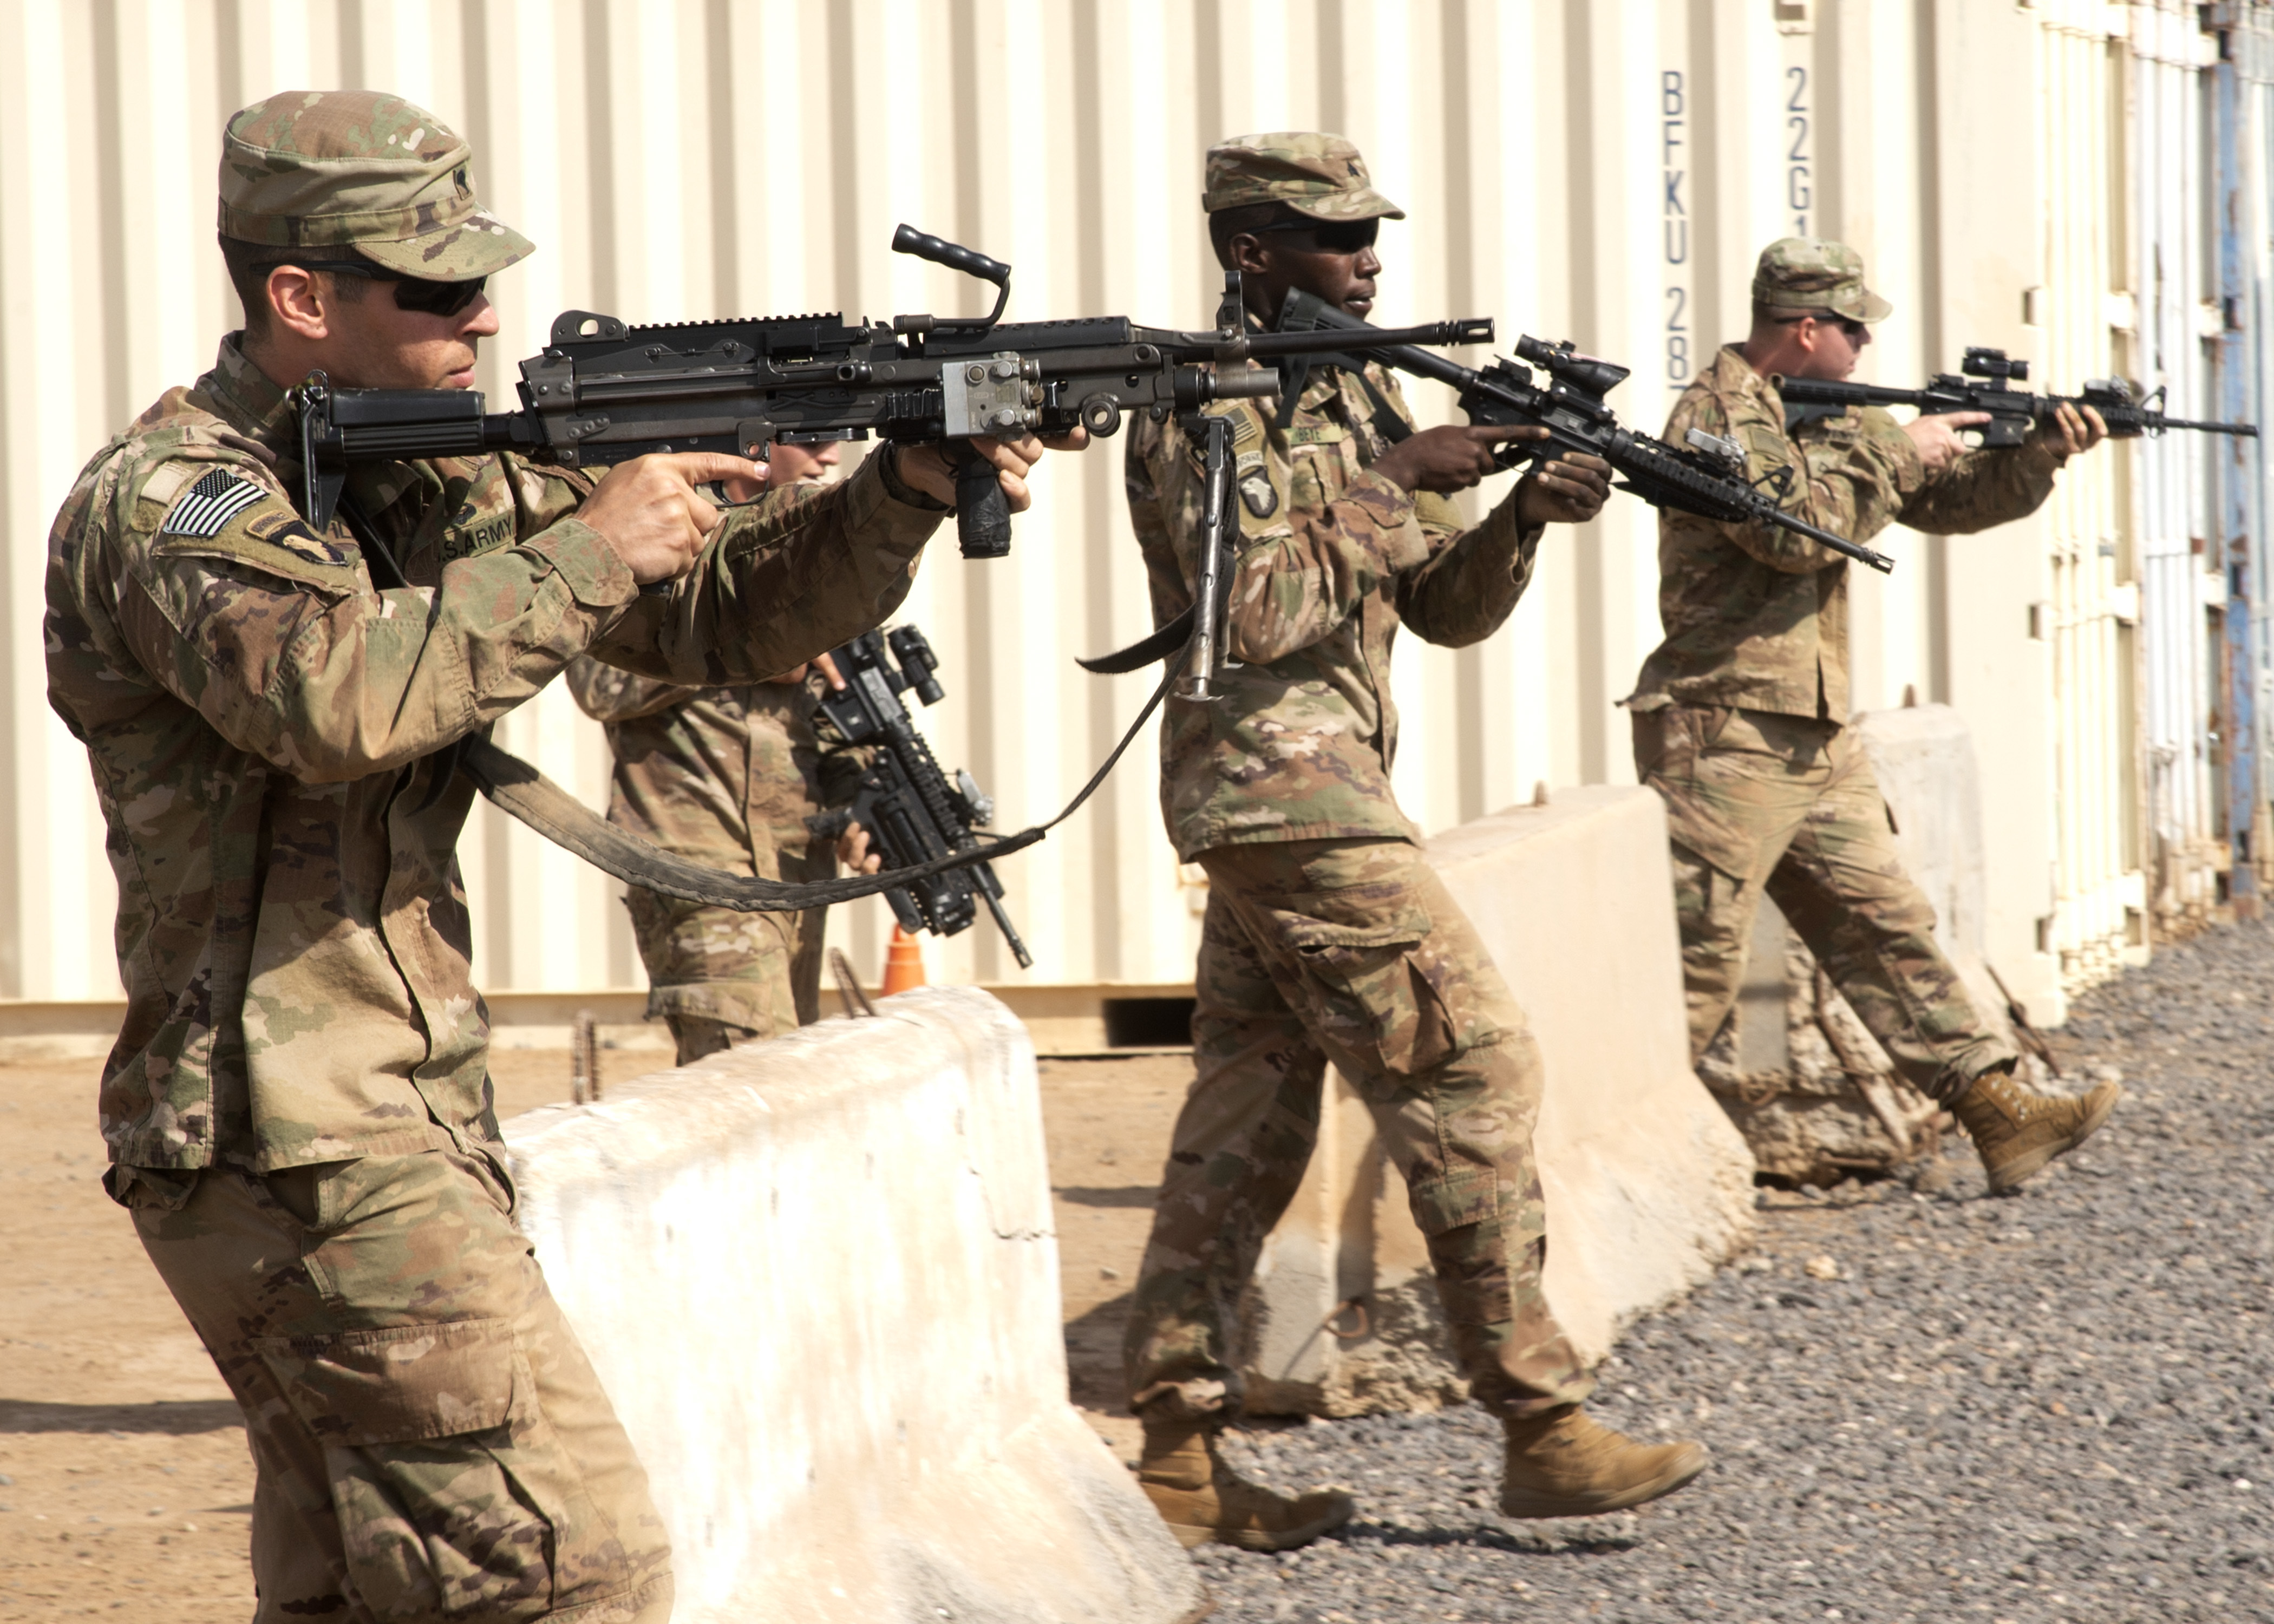 Viper Company, 1-26 Infantry, 101st Airborne Division (Air Assault), with the East Africa Response Force (EARF) assigned to Combined Joint Task Force-Horn of Africa, respond to simulated gunfire at Camp Lemonnier, Djibouti, Feb. 8, 2019. The purpose of the EARF is to rapidly provide tailorable packages of forces to protect American interests on the African continent should any threats arise. (U.S. Navy Photo by Mass Communication Specialist 1st Class Nick Scott)